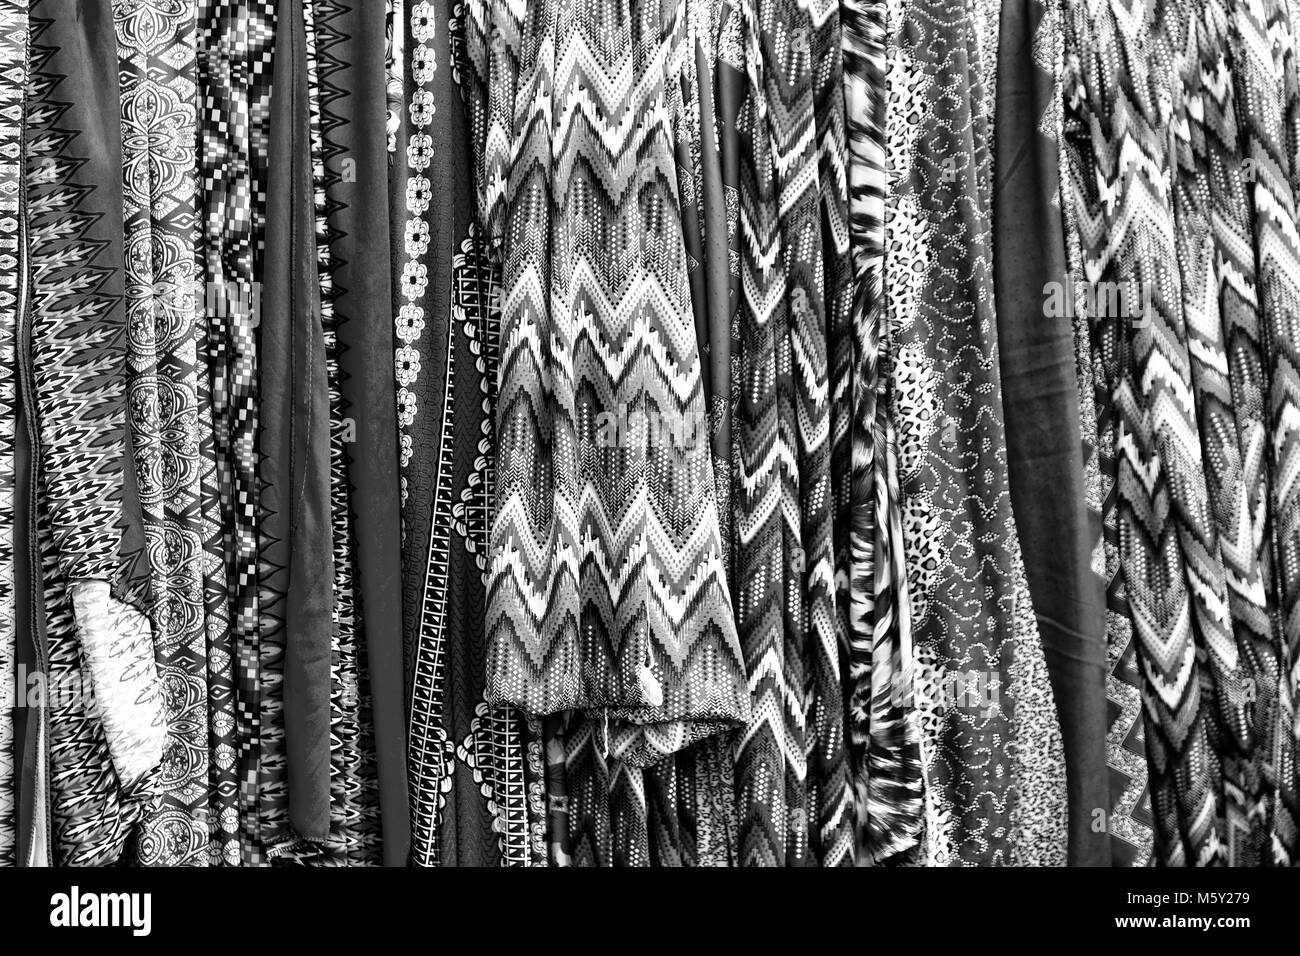 Africa Fabric Colorful Black and White Stock Photos & Images - Alamy